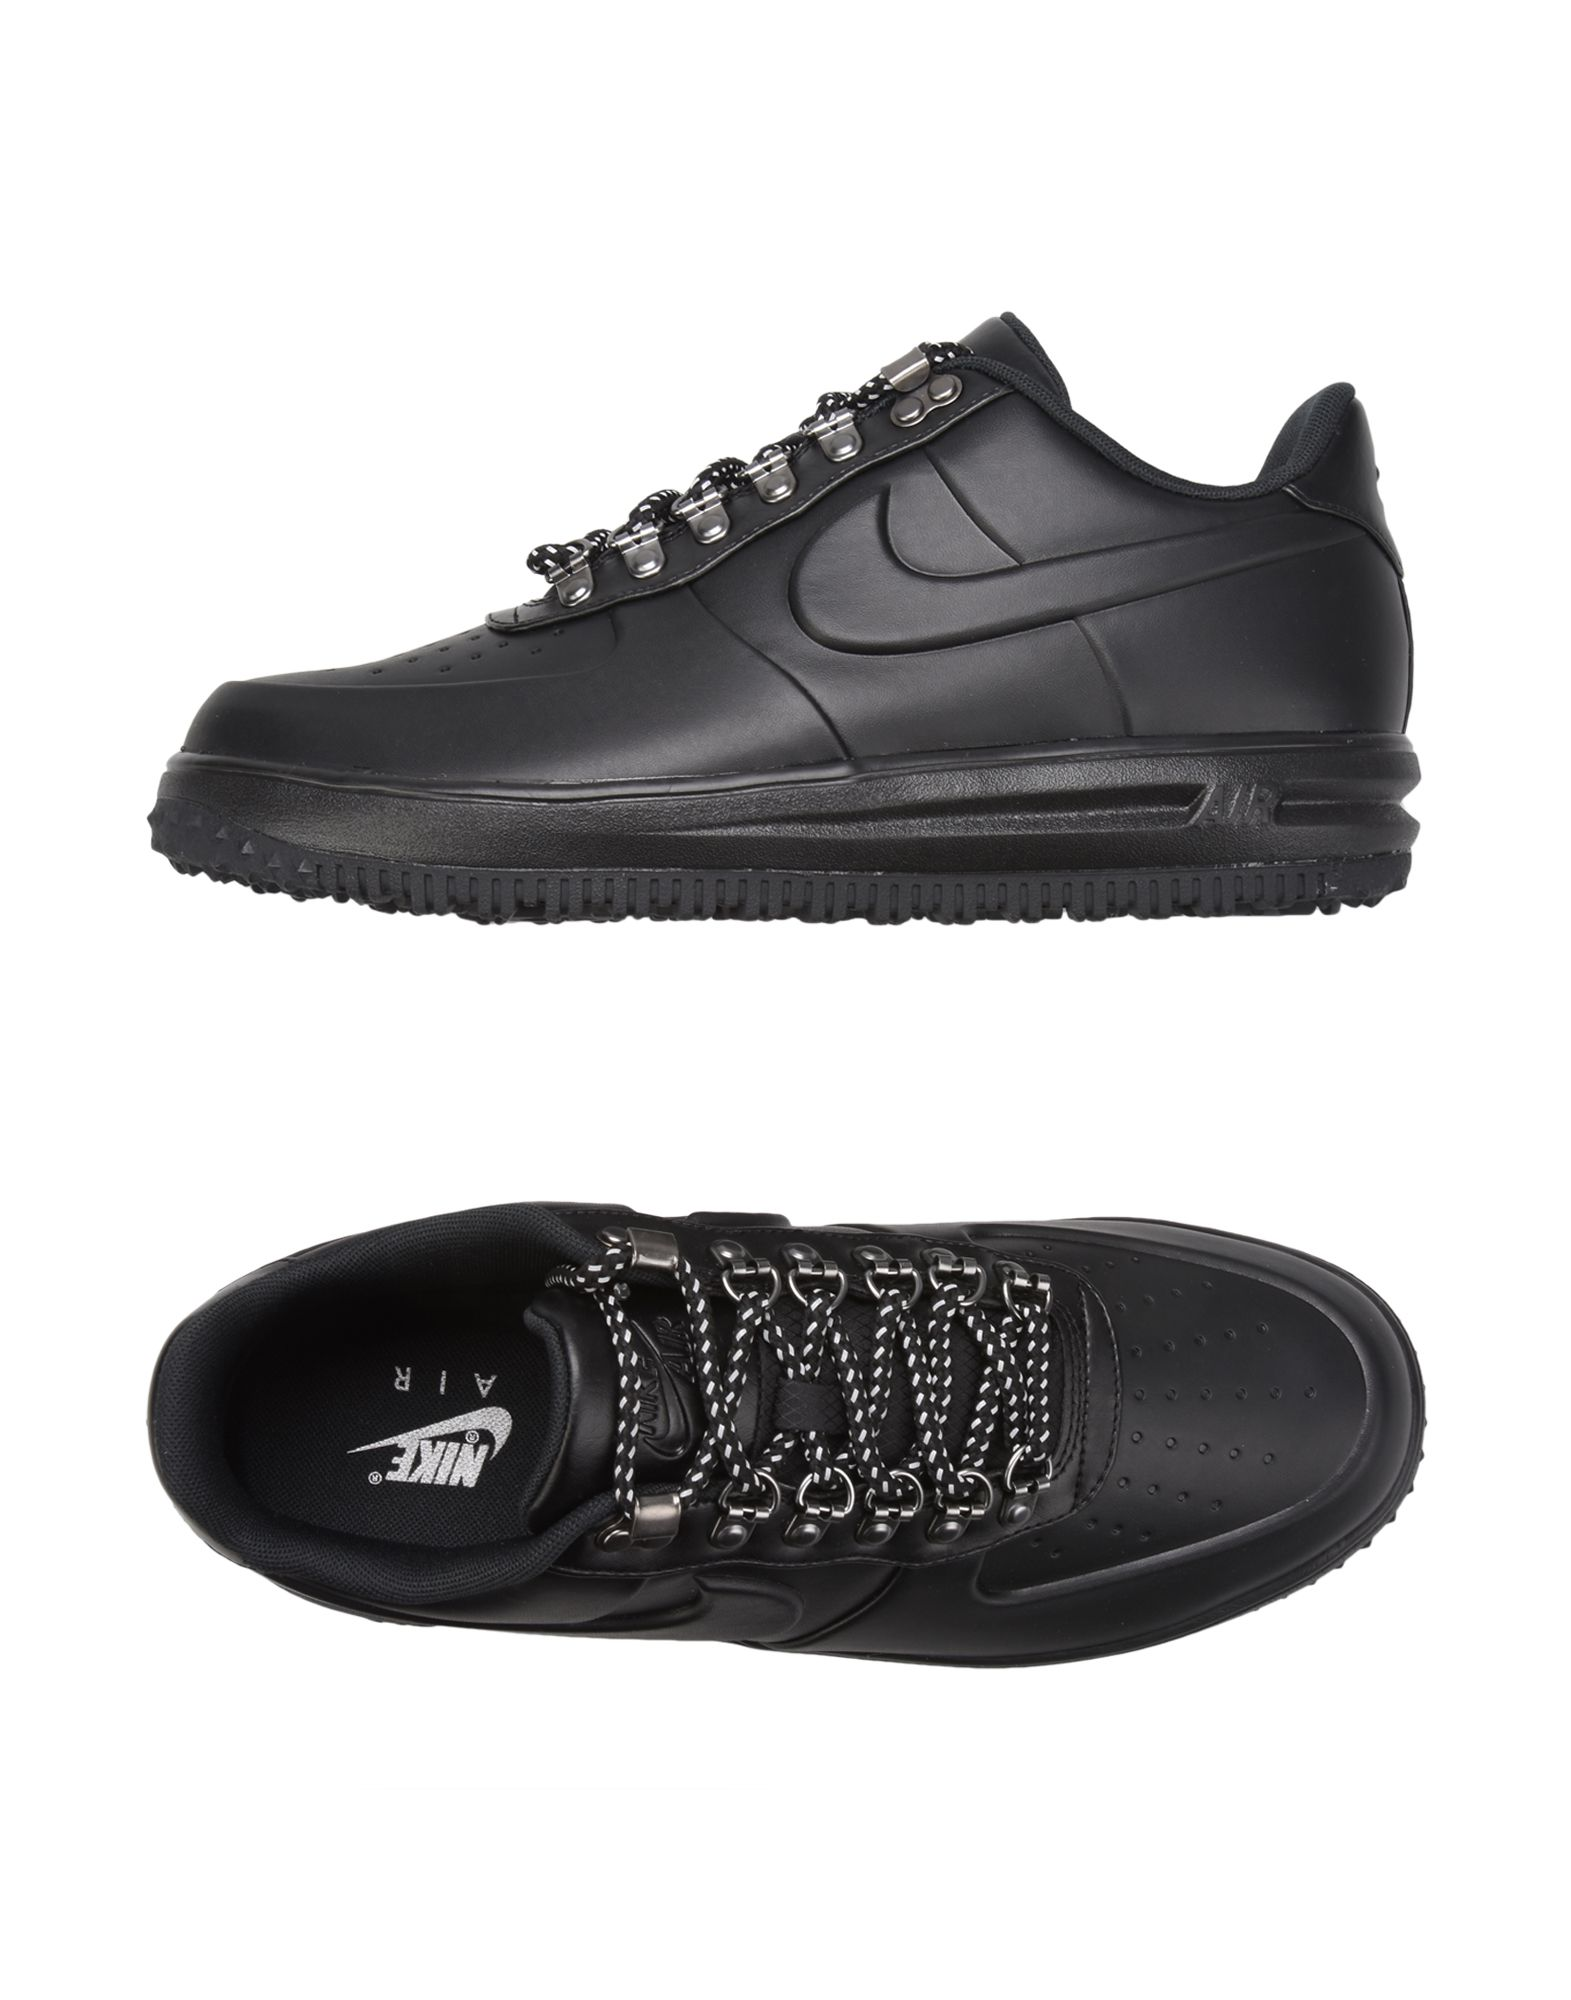 Sneakers Nike Lf1 Duckboot Low - Uomo - 11407256JF